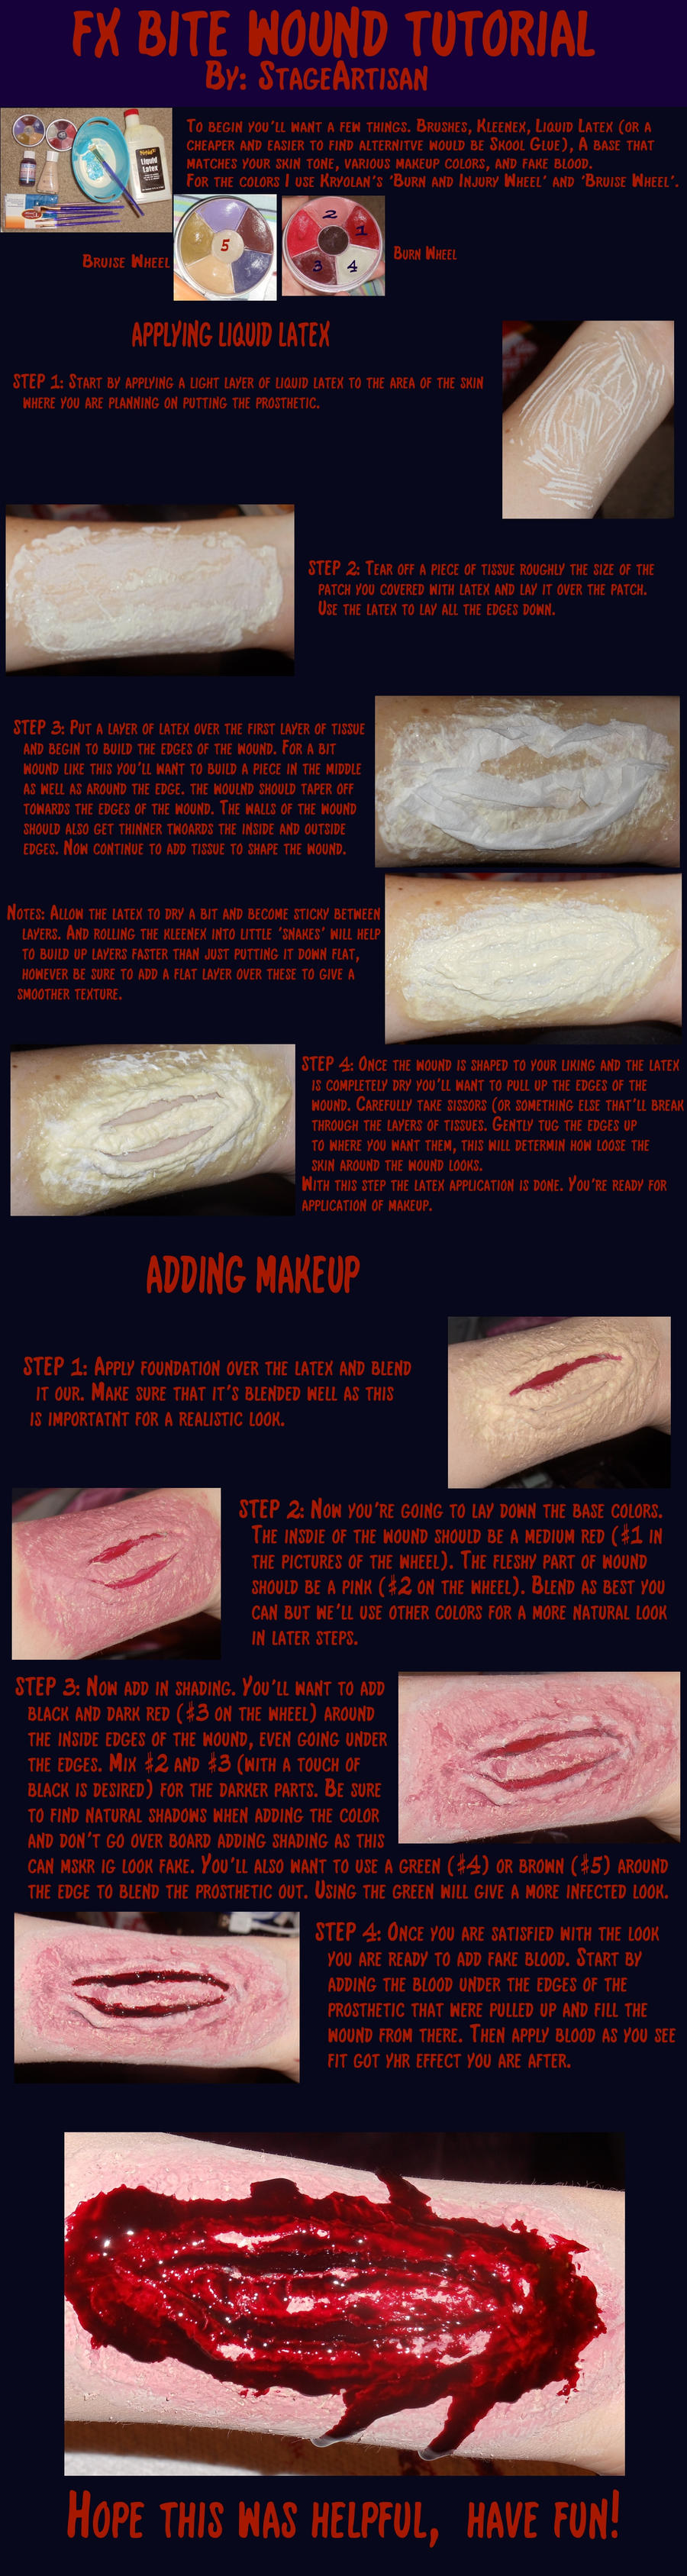 FX bite wound tutorial by StageArtisan